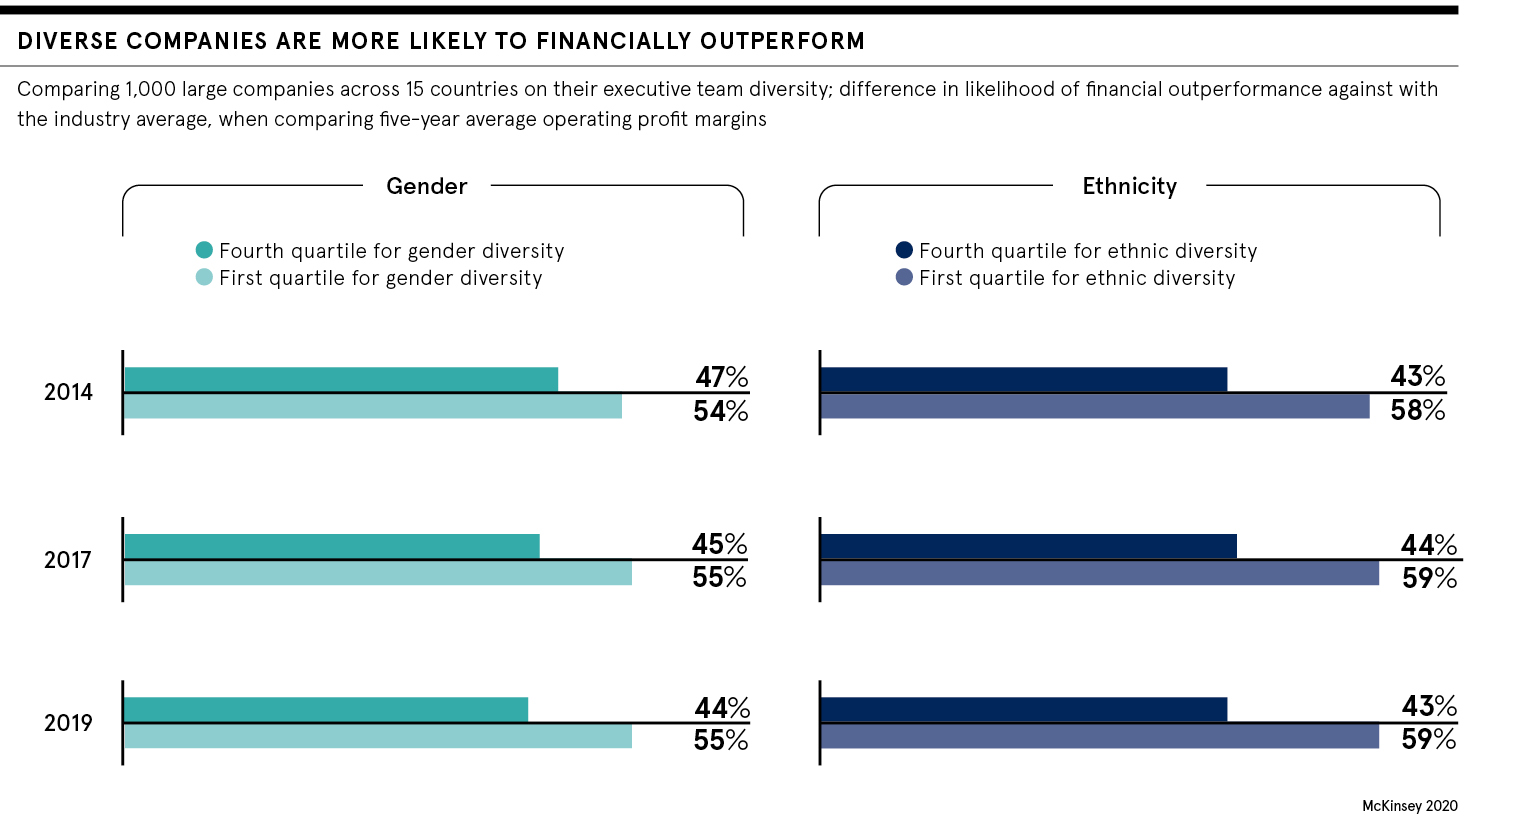 Diverse companies are more likely to financially outperform